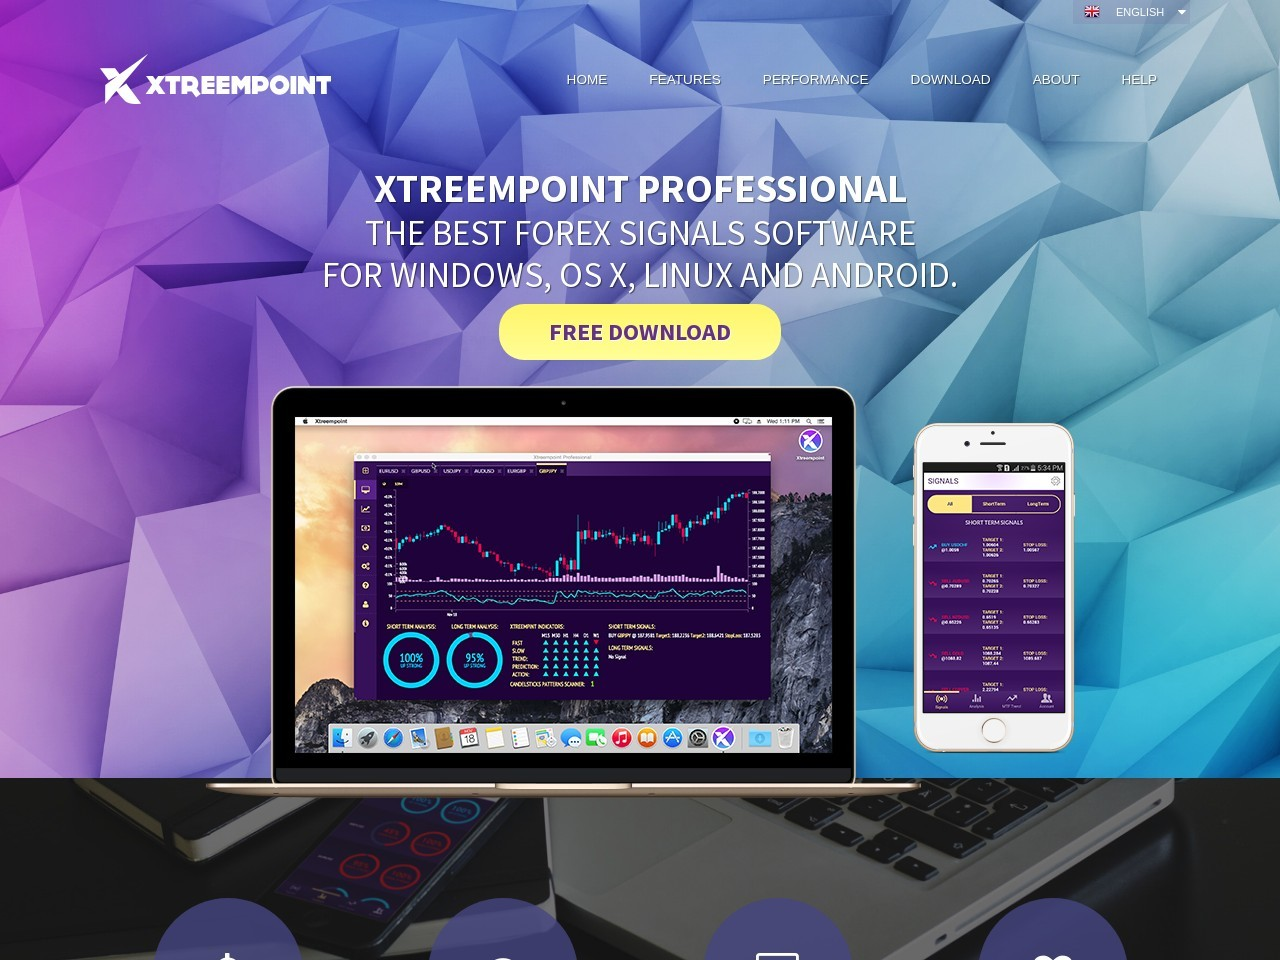 Xtreempoint